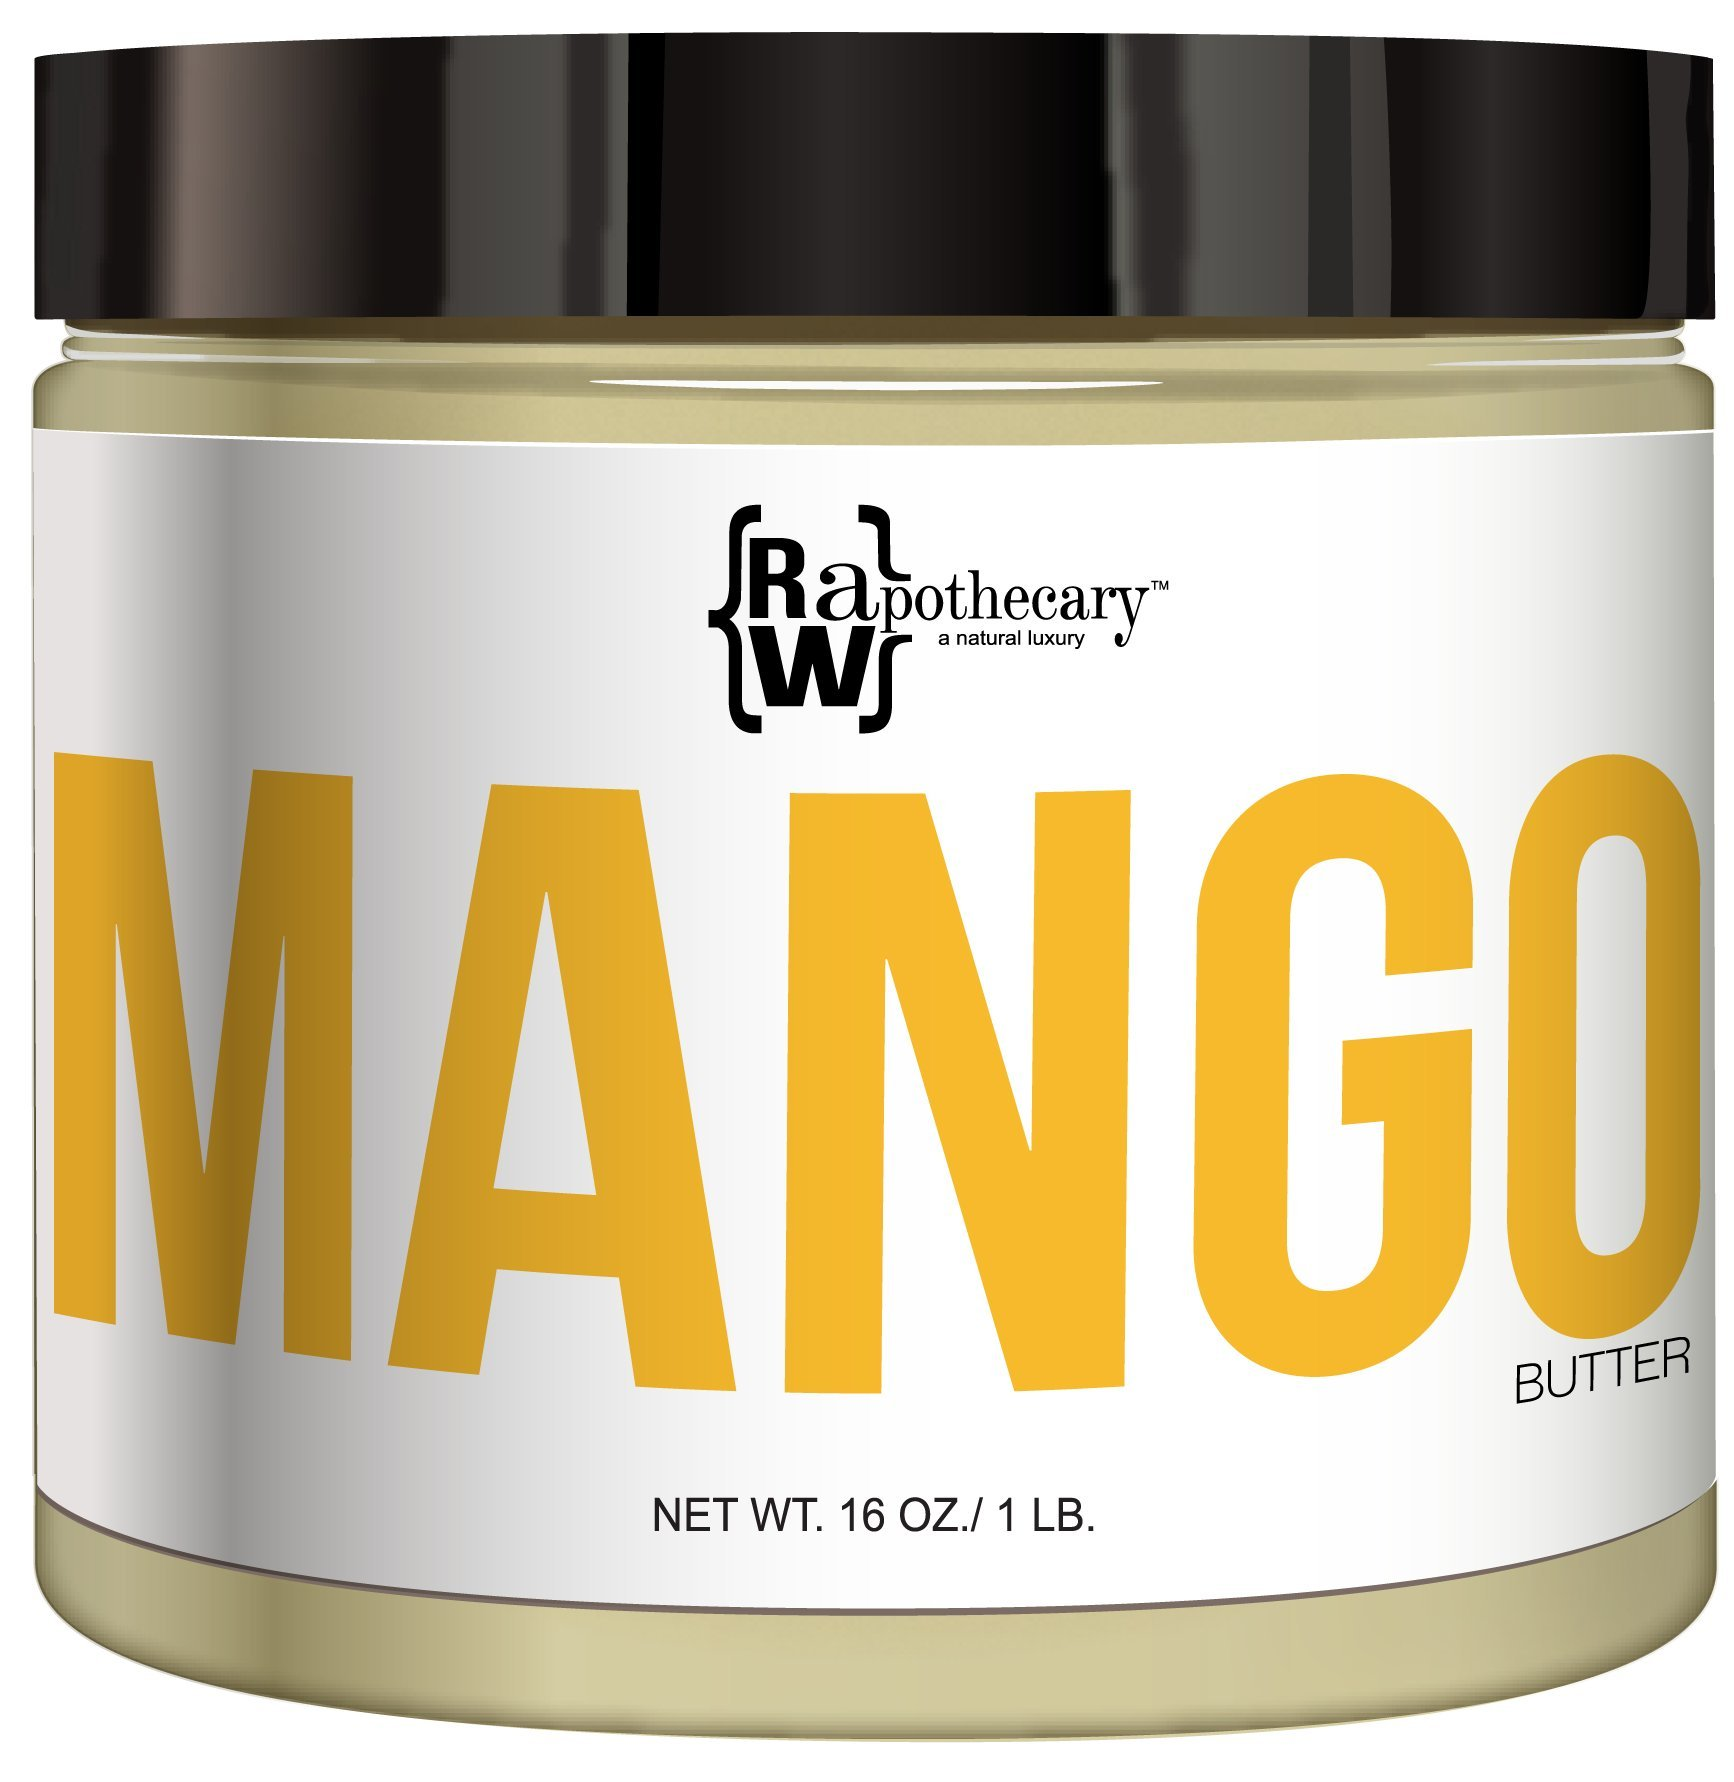 Raw, Unrefined Mango Butter, 16oz, 1 lb   100 Percent Pure and Organic with Zero Additives, Cruelty Free   For Skin, Hair & DIY